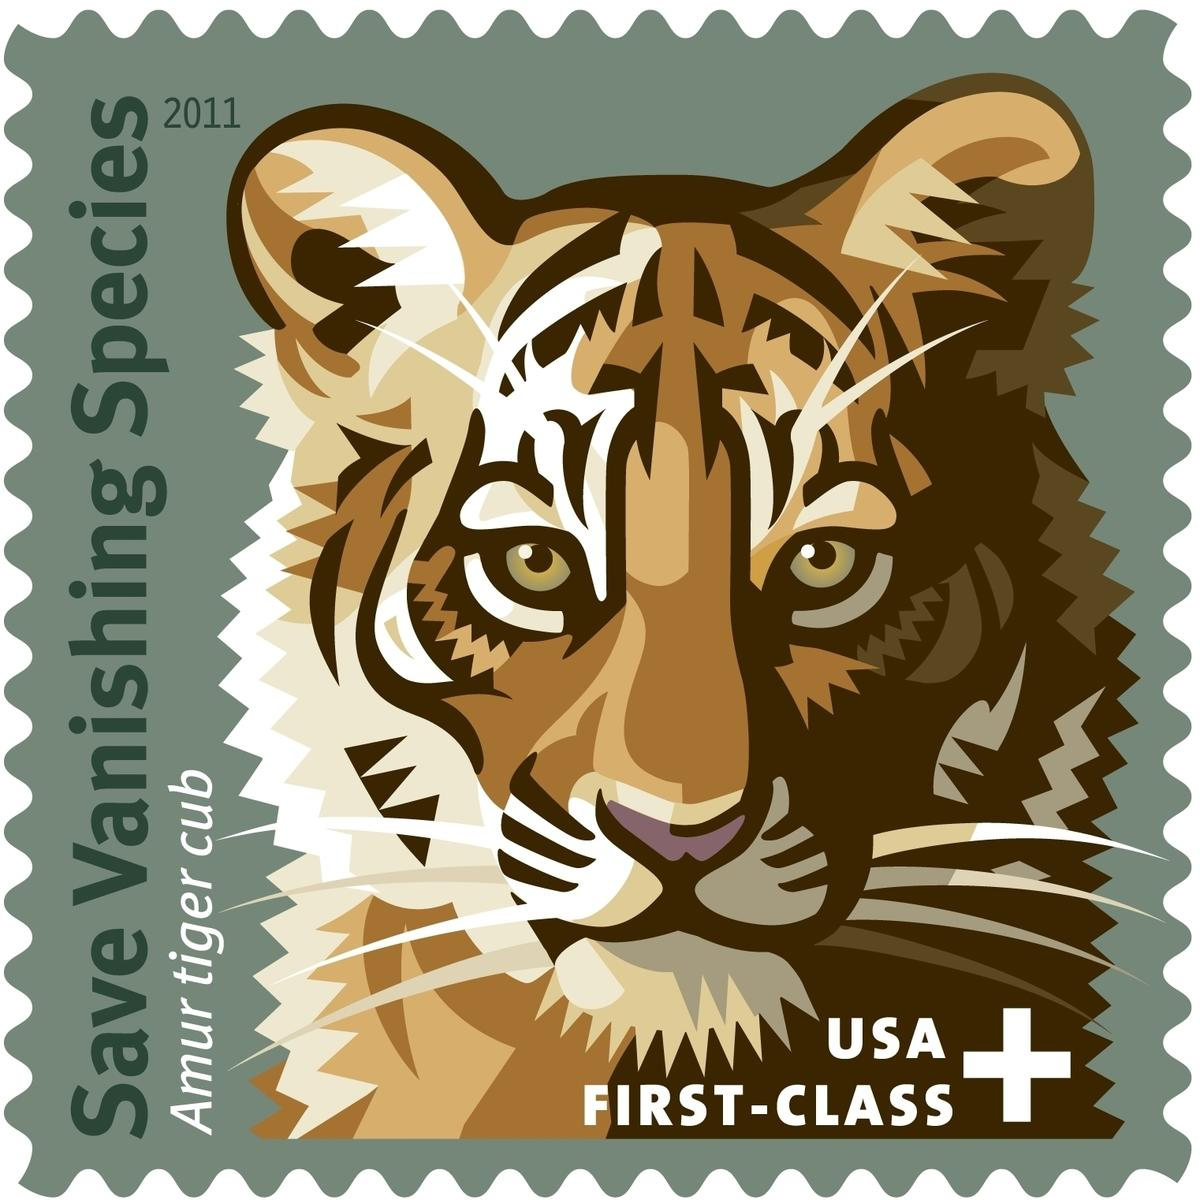 65qxsdjt1d save vanishing species stamp image